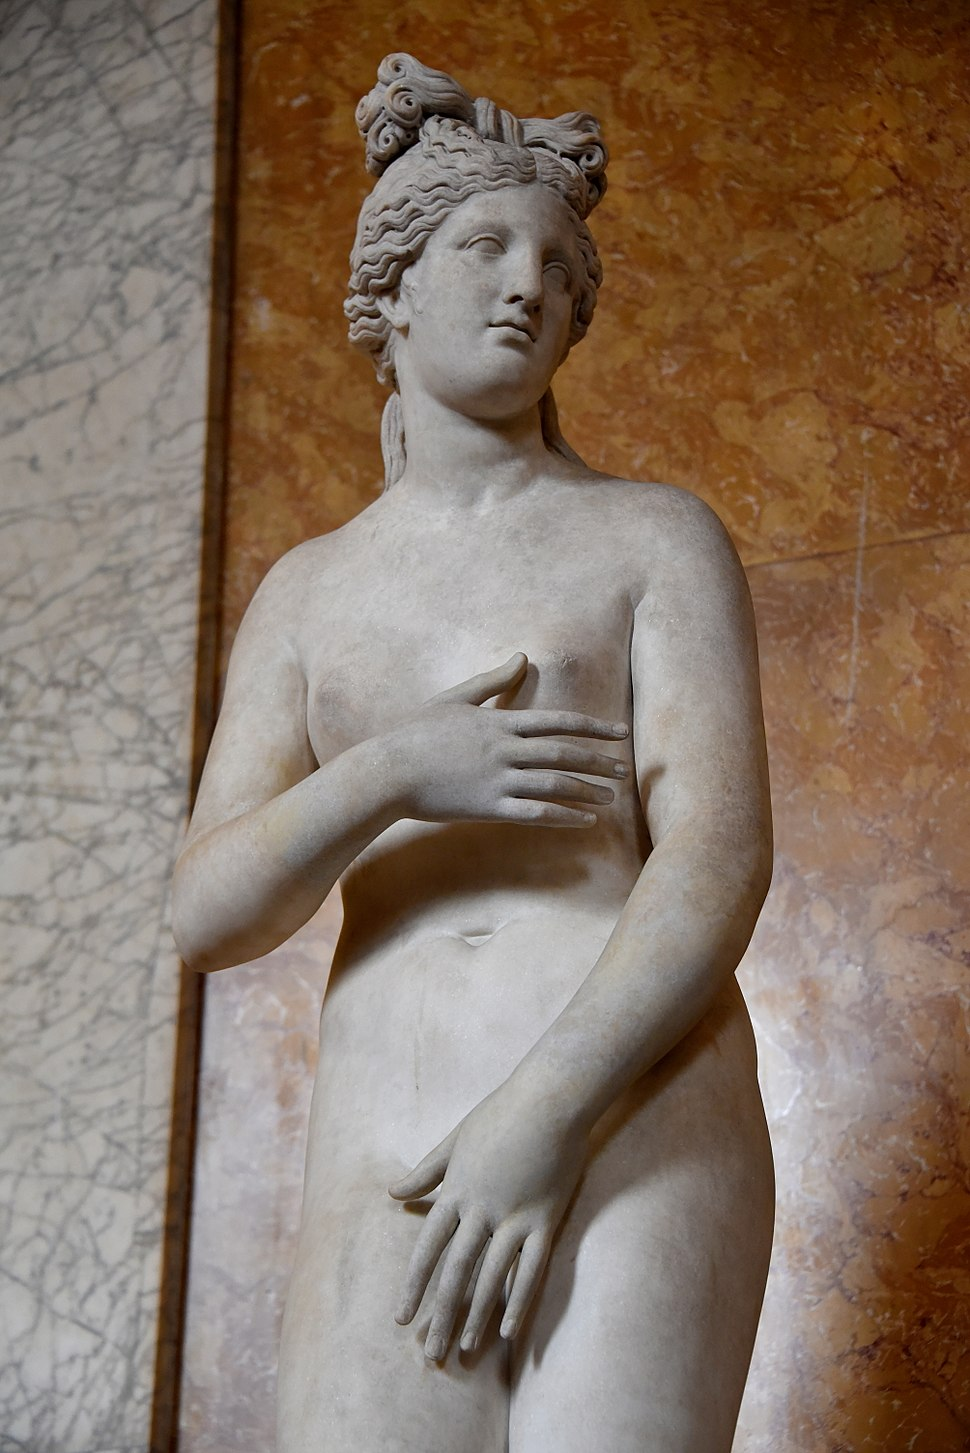 Statue of nude Venus of the Capitoline type, Roman, 2nd century AD, from Campo Iemini, housed in the British Museum